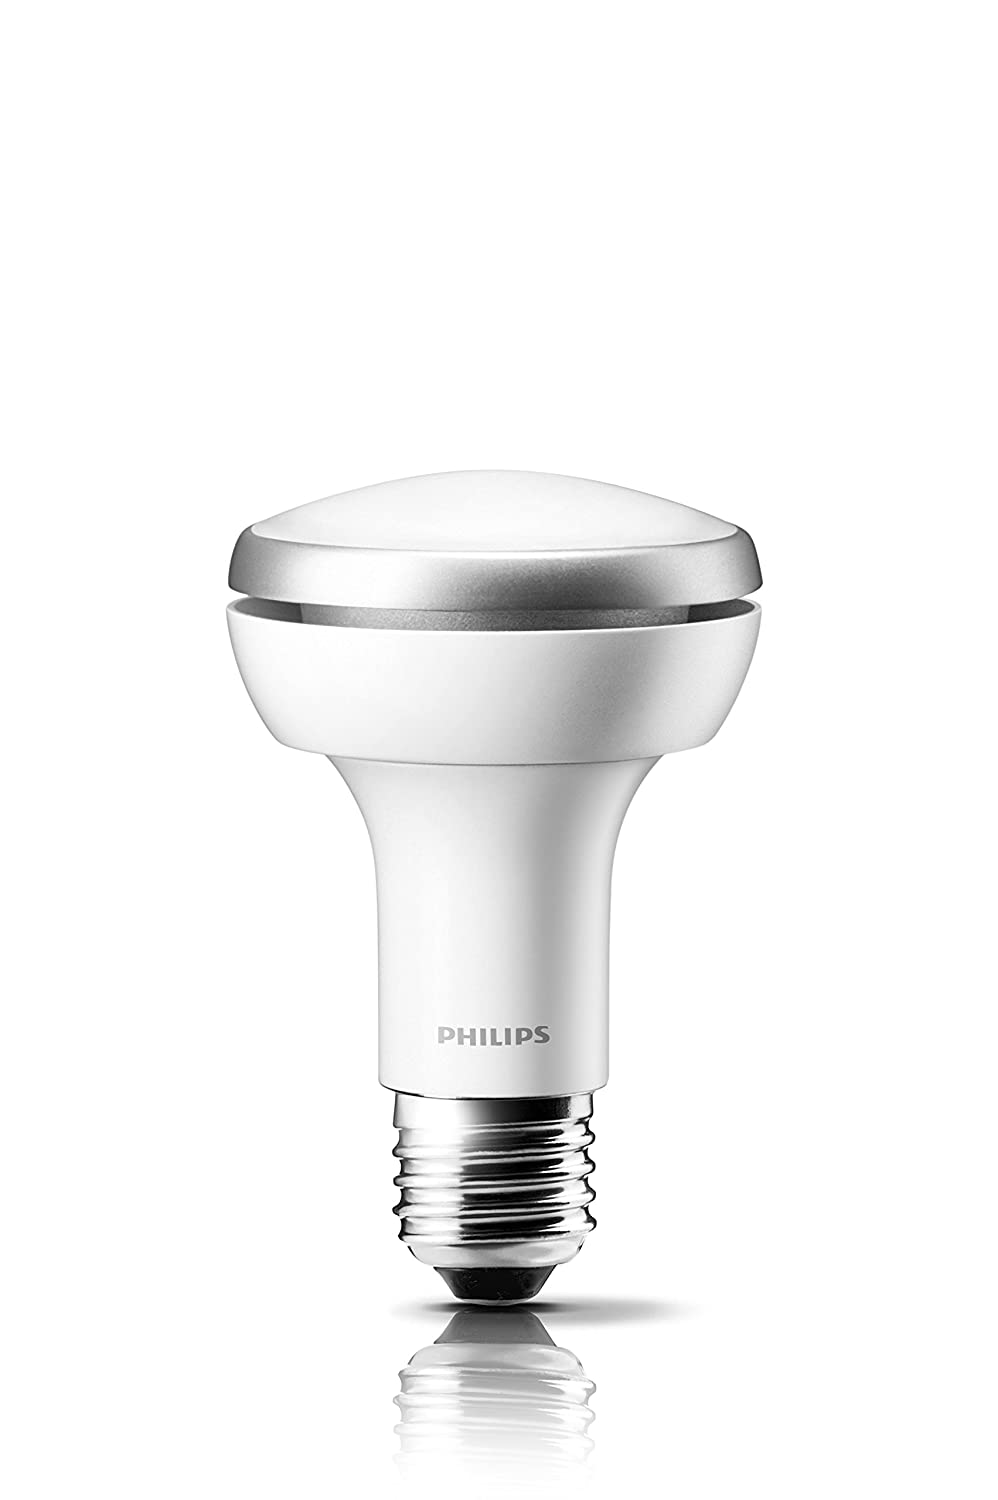 philips 451849 8 watt 50 watt r20 indoor flood led light bulb dimmable new ebay. Black Bedroom Furniture Sets. Home Design Ideas